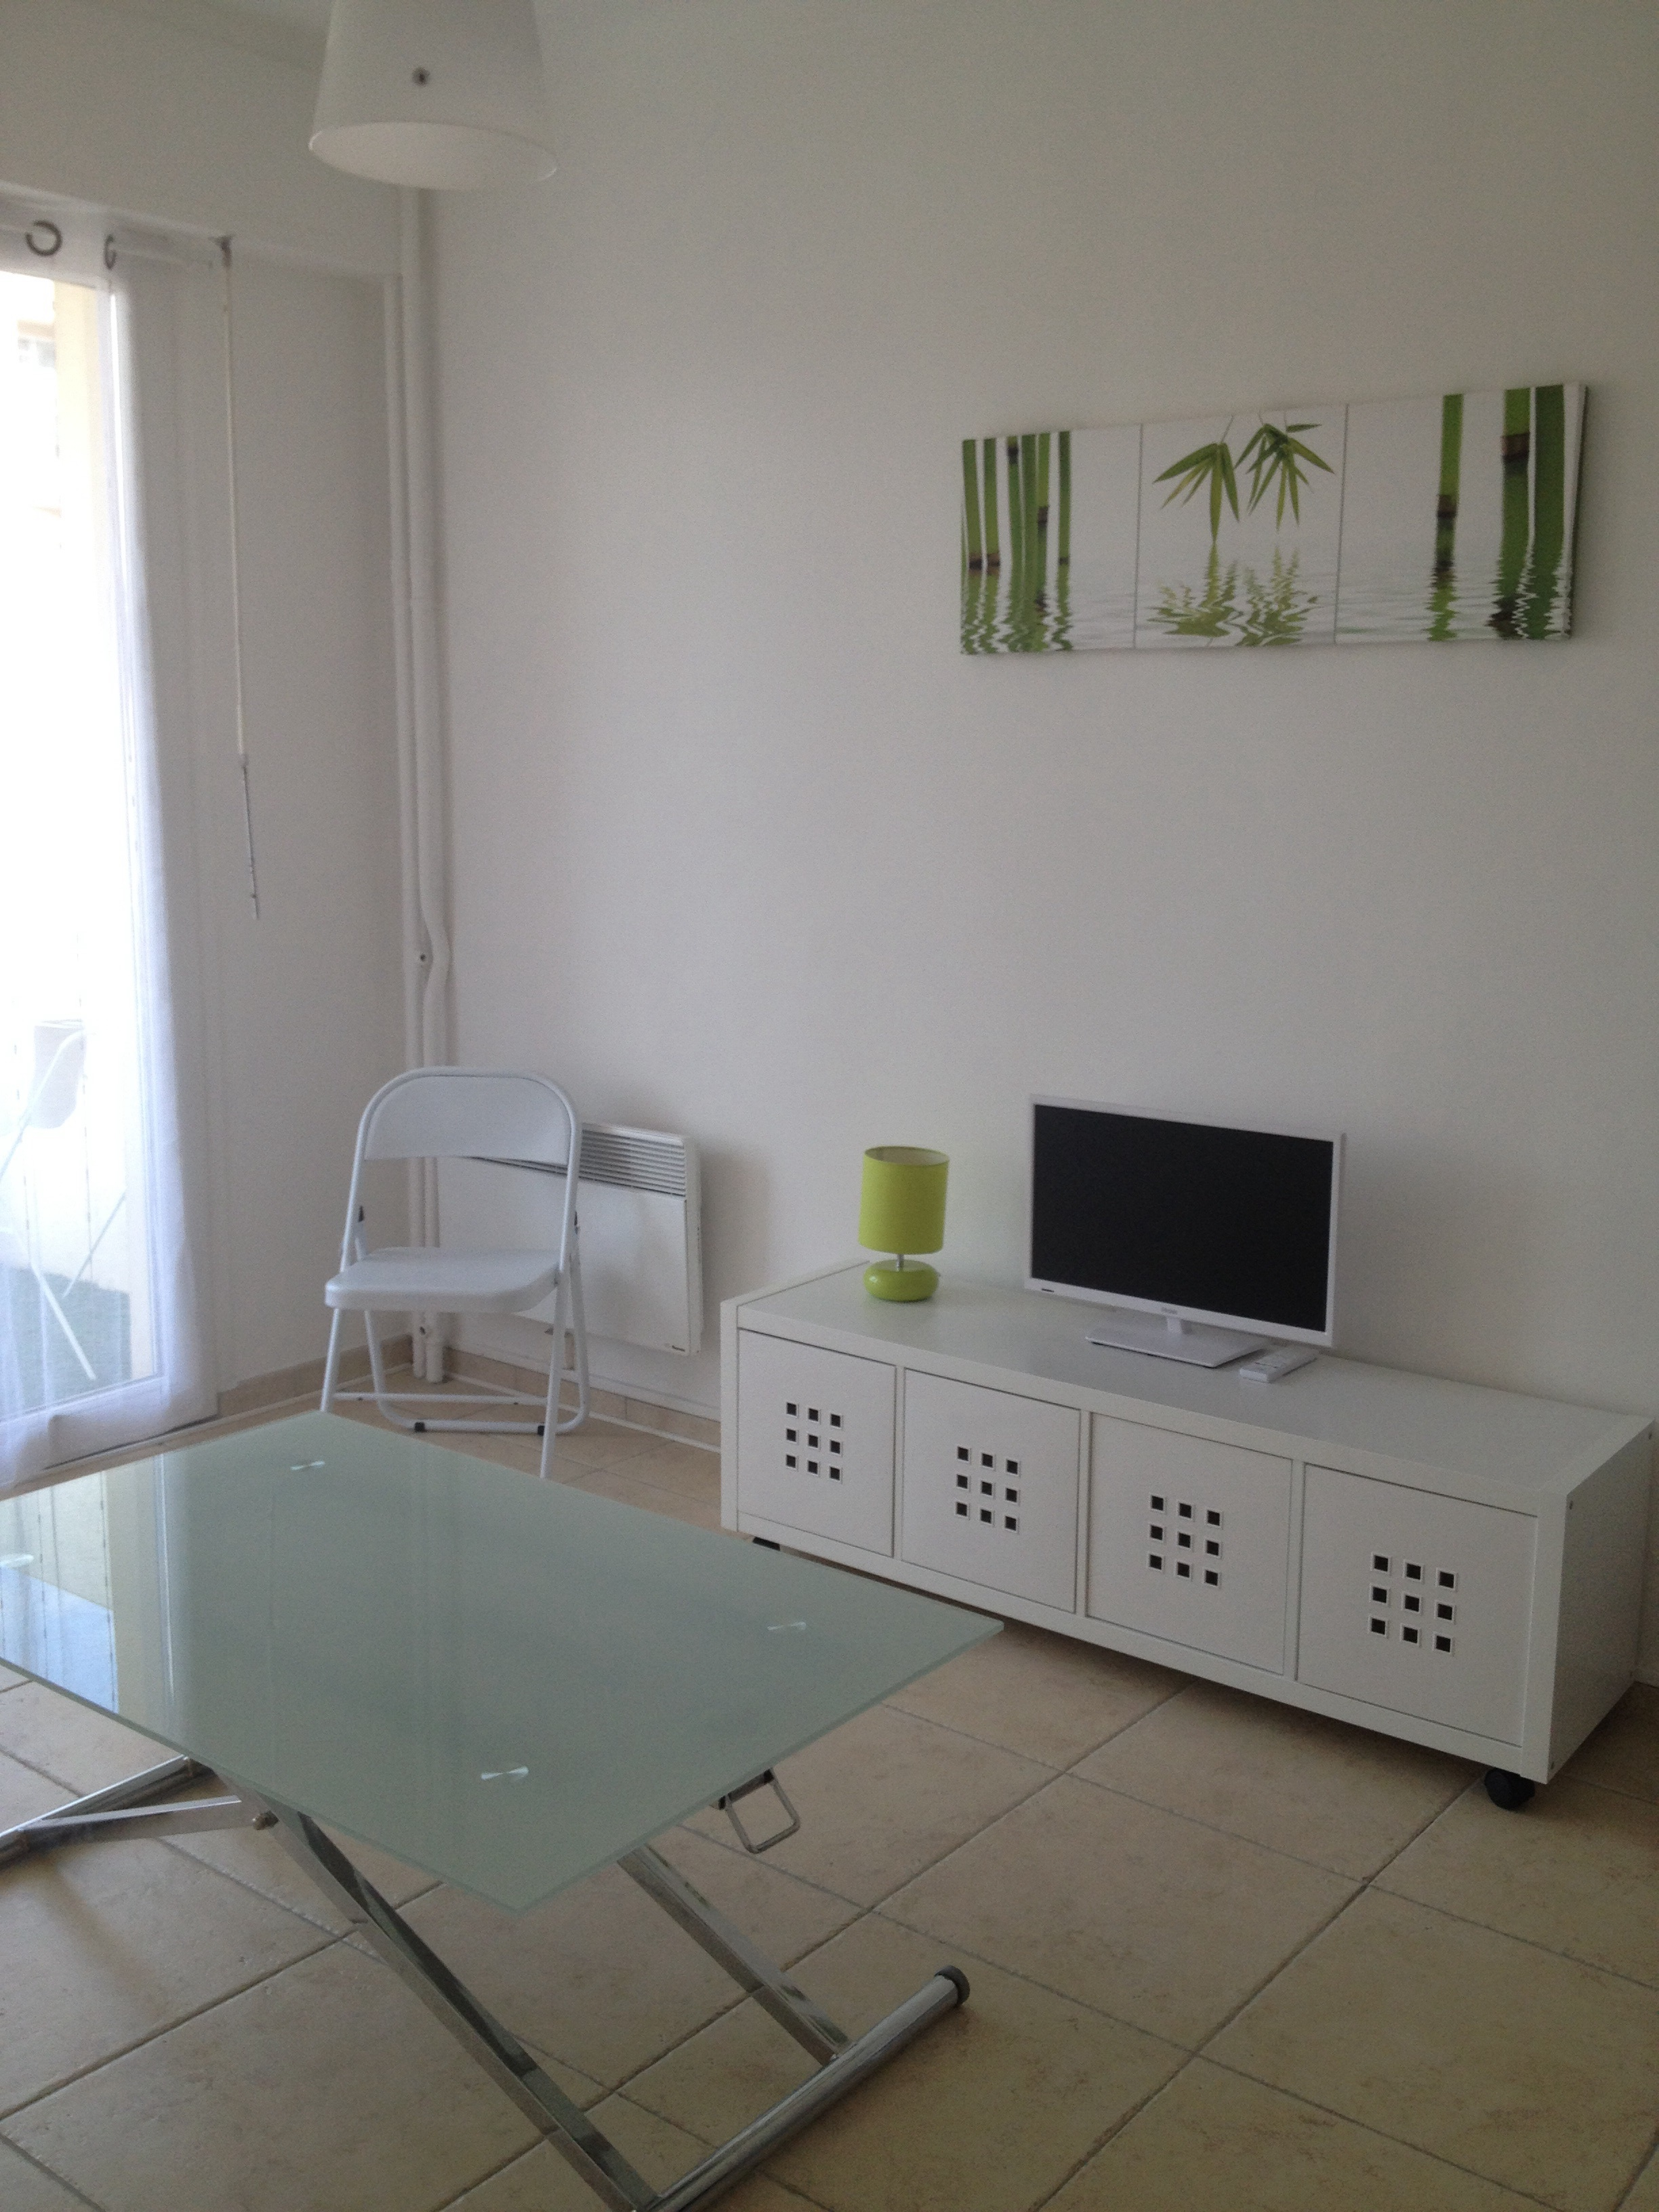 Location tudiant agreable studio meuble avec terrasse - Location studio meuble nice ...